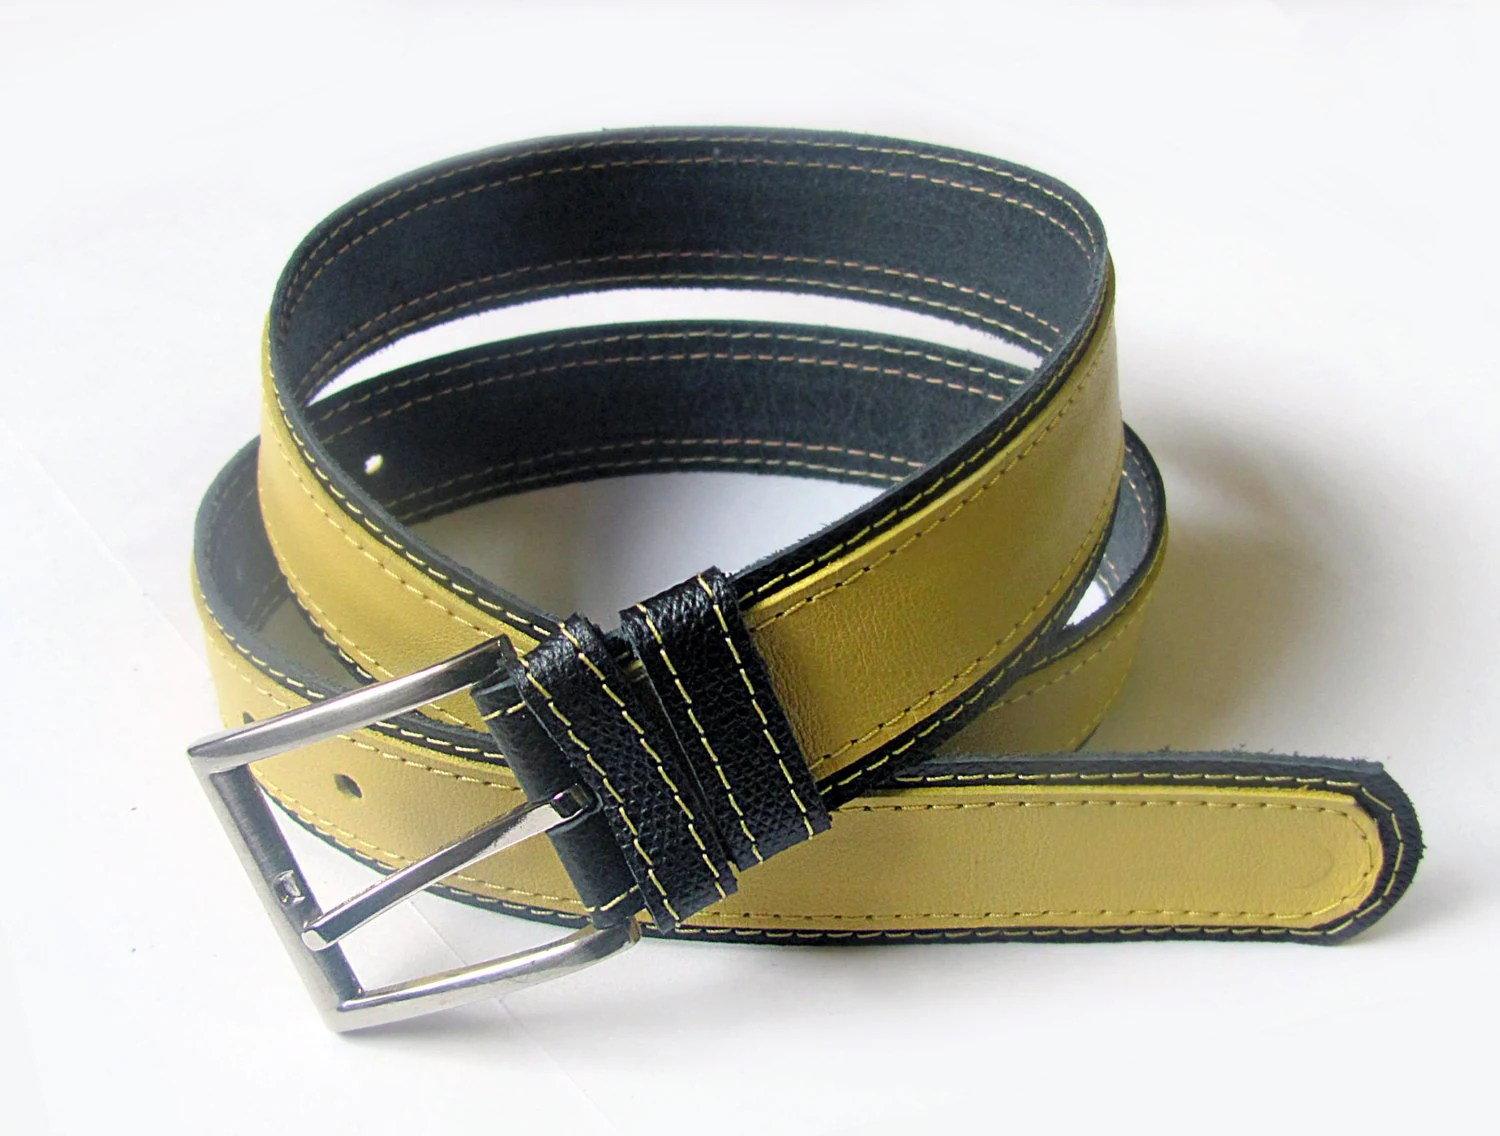 Leather belt in Yellow and Black color, ALL SIZES - erikasbelts